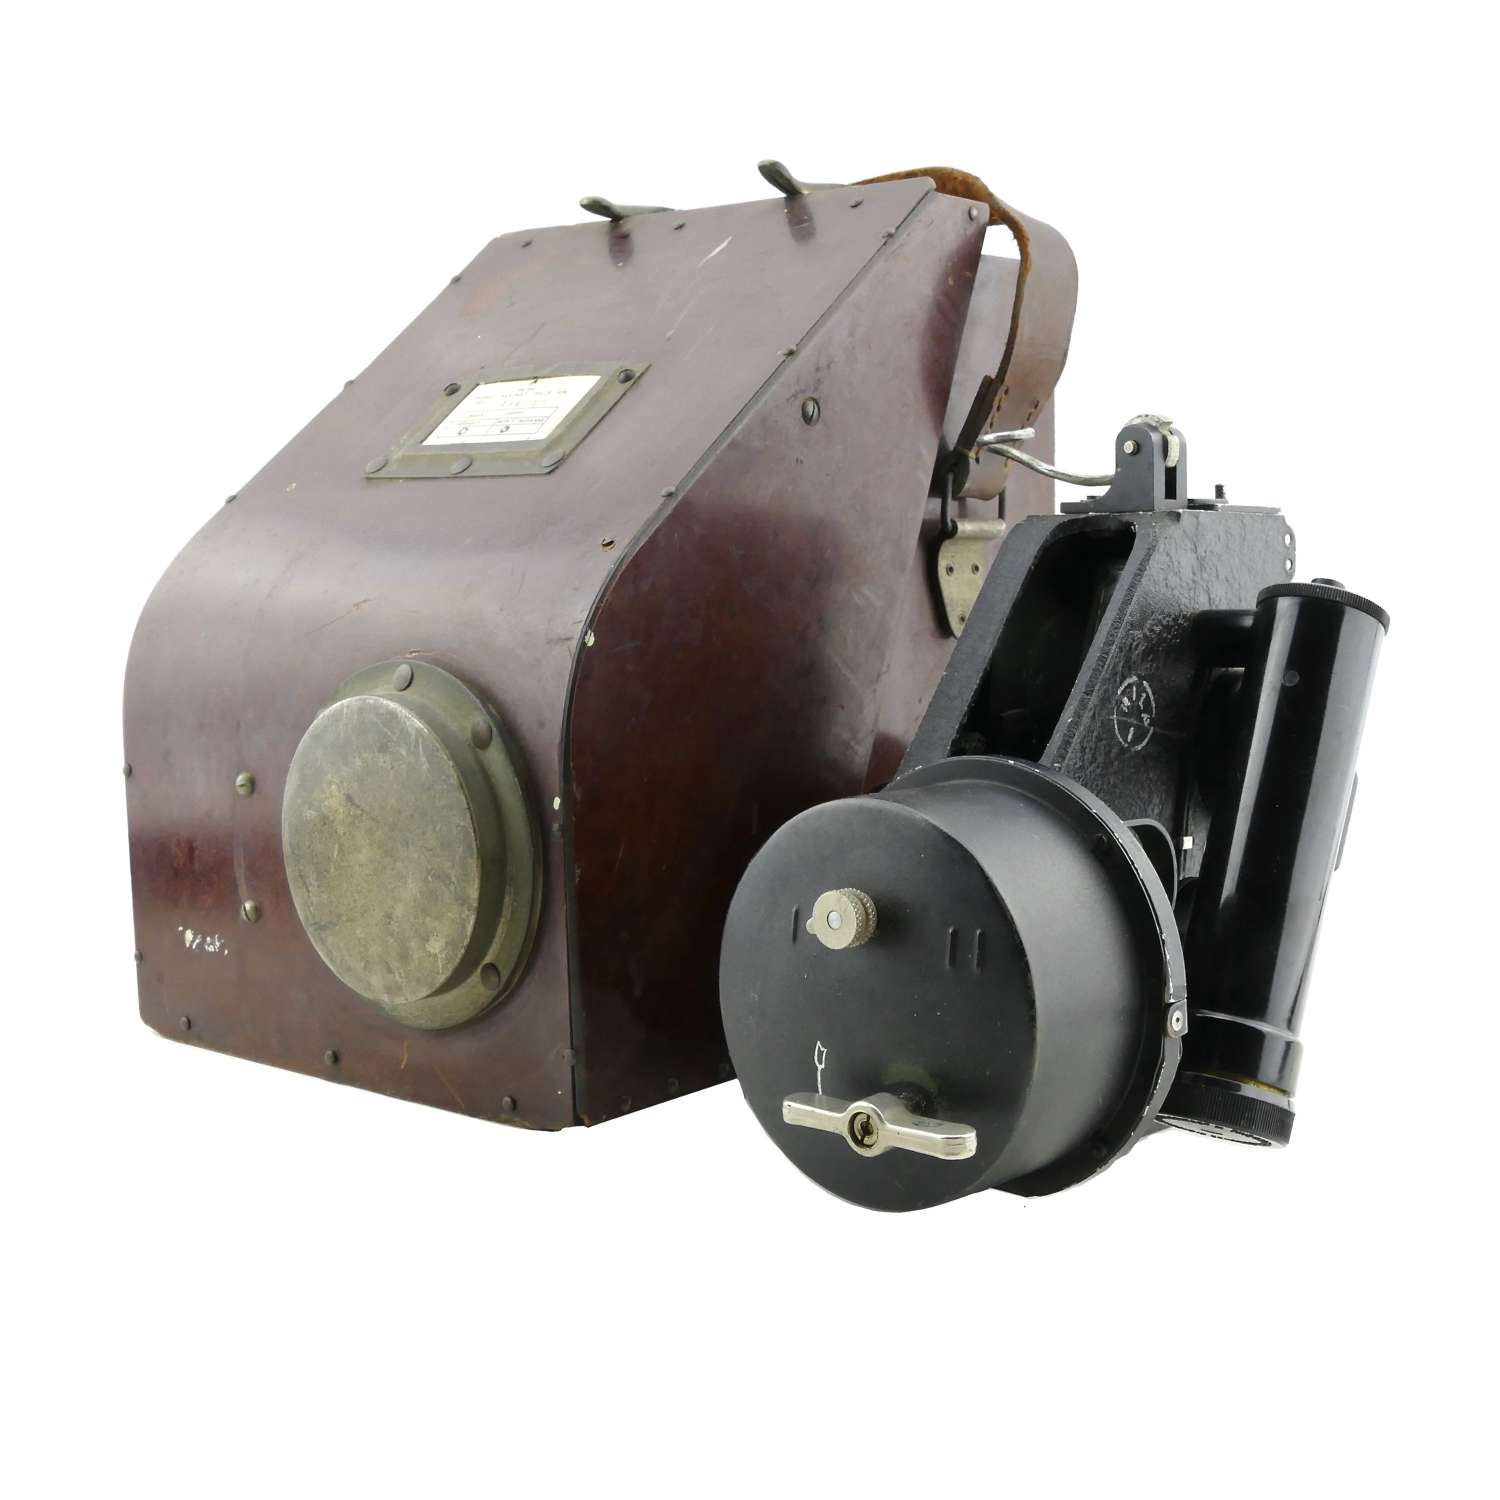 RAF Mk.IX BM bubble sextant, cased